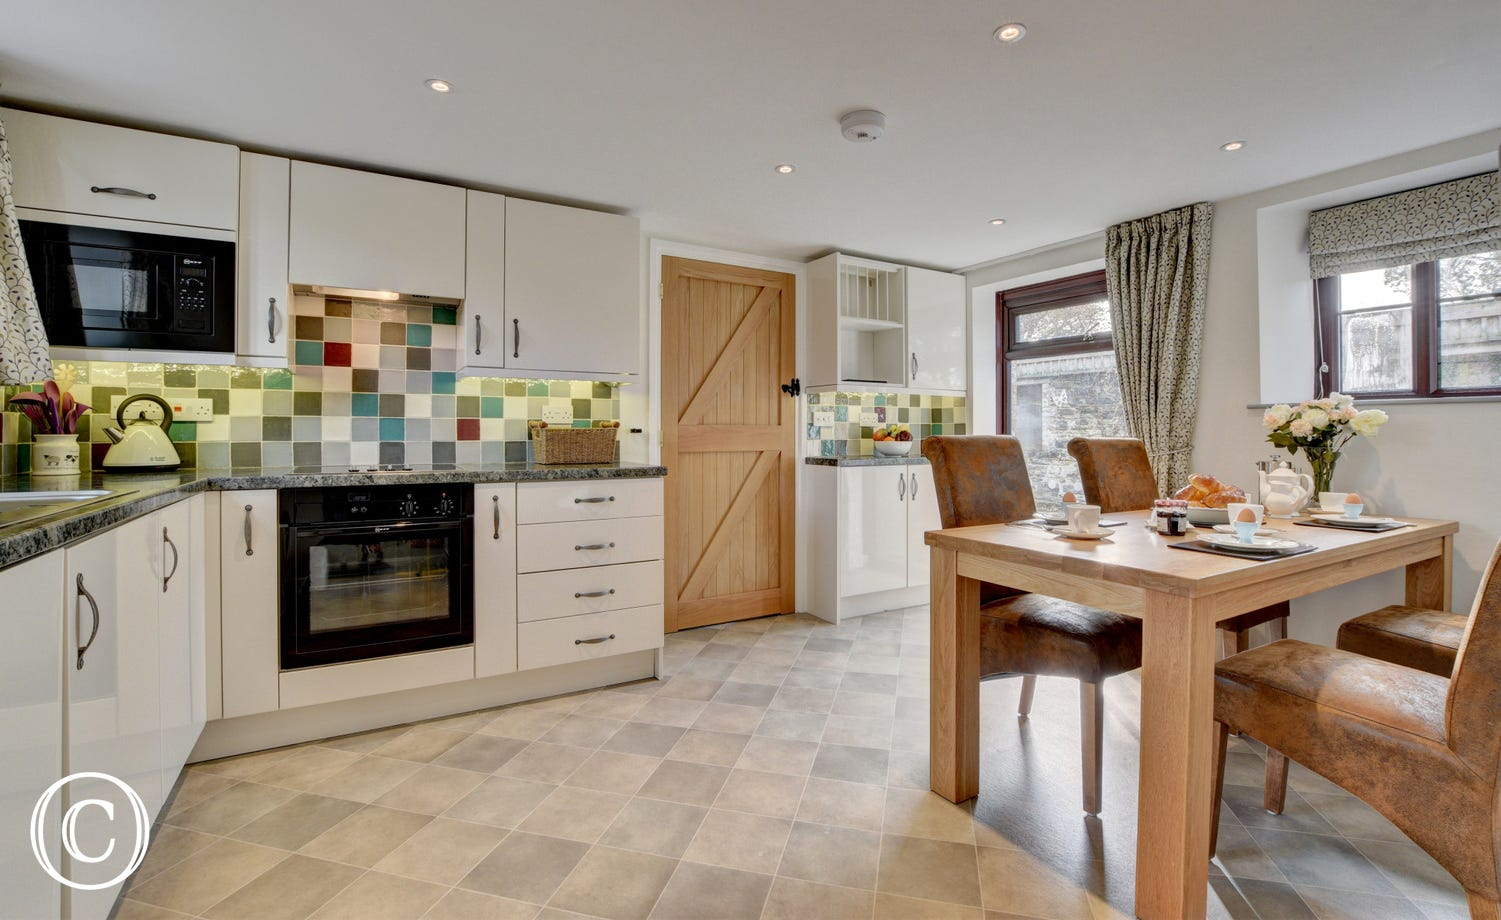 The well equipped kitchen with an attractive dining area overlooks the courtyard